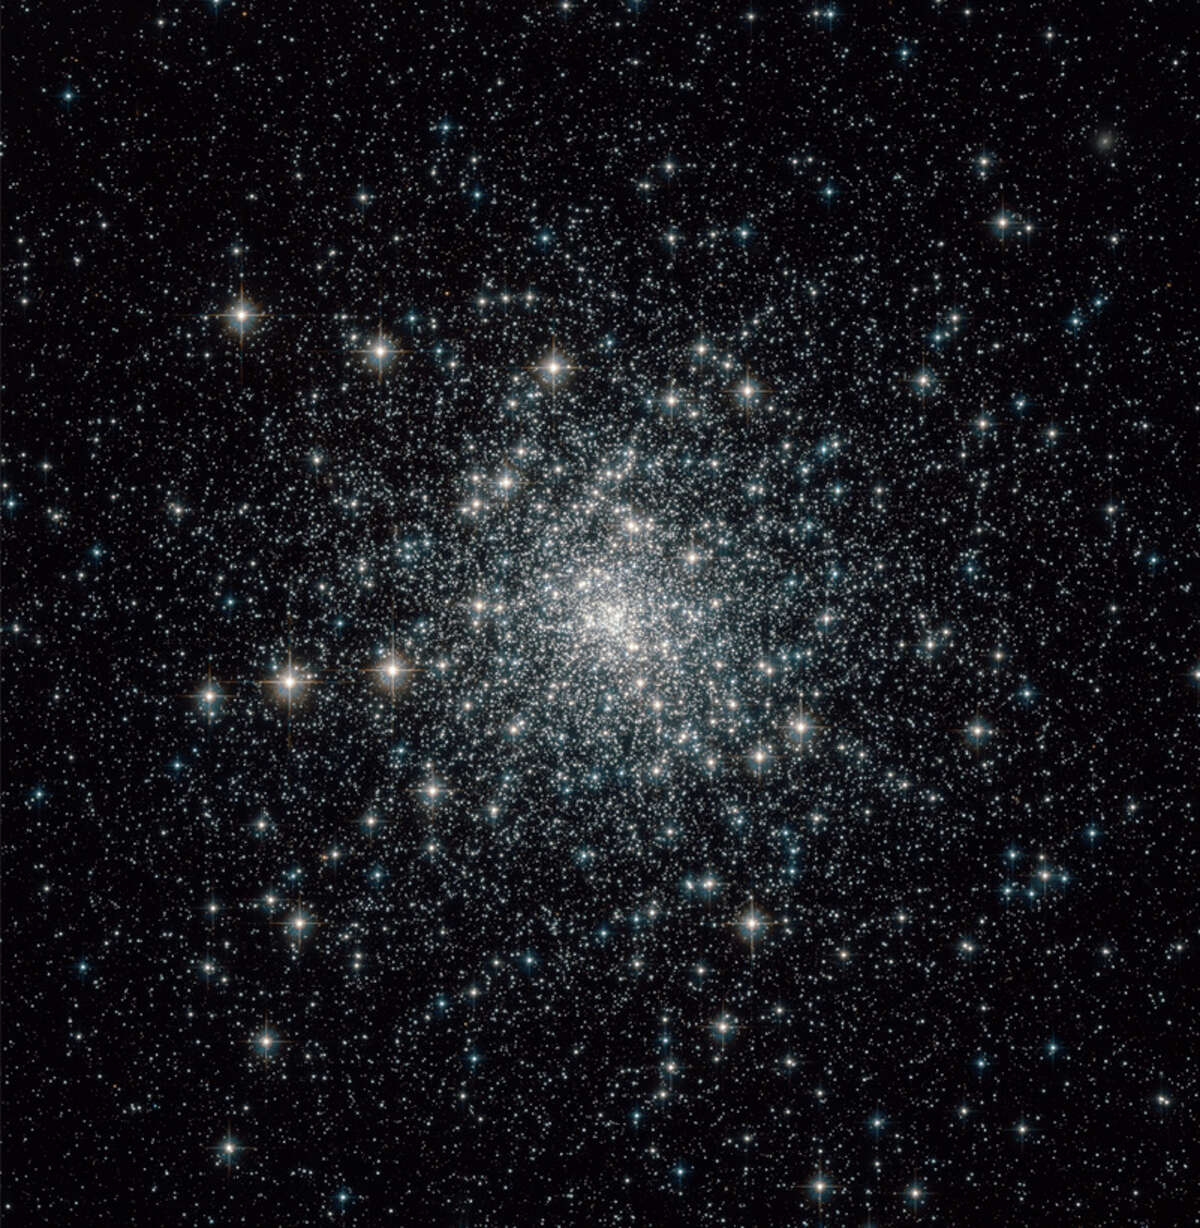 The M30 globular cluster, a 13 billion-year-old dense collection of stars, about 90 light years across and 28,000 light years from Earth. Keep clicking to see photos of other globular star clusters by NASA's Hubble telescope...   Photo credit: NASA, Hubble Telescope